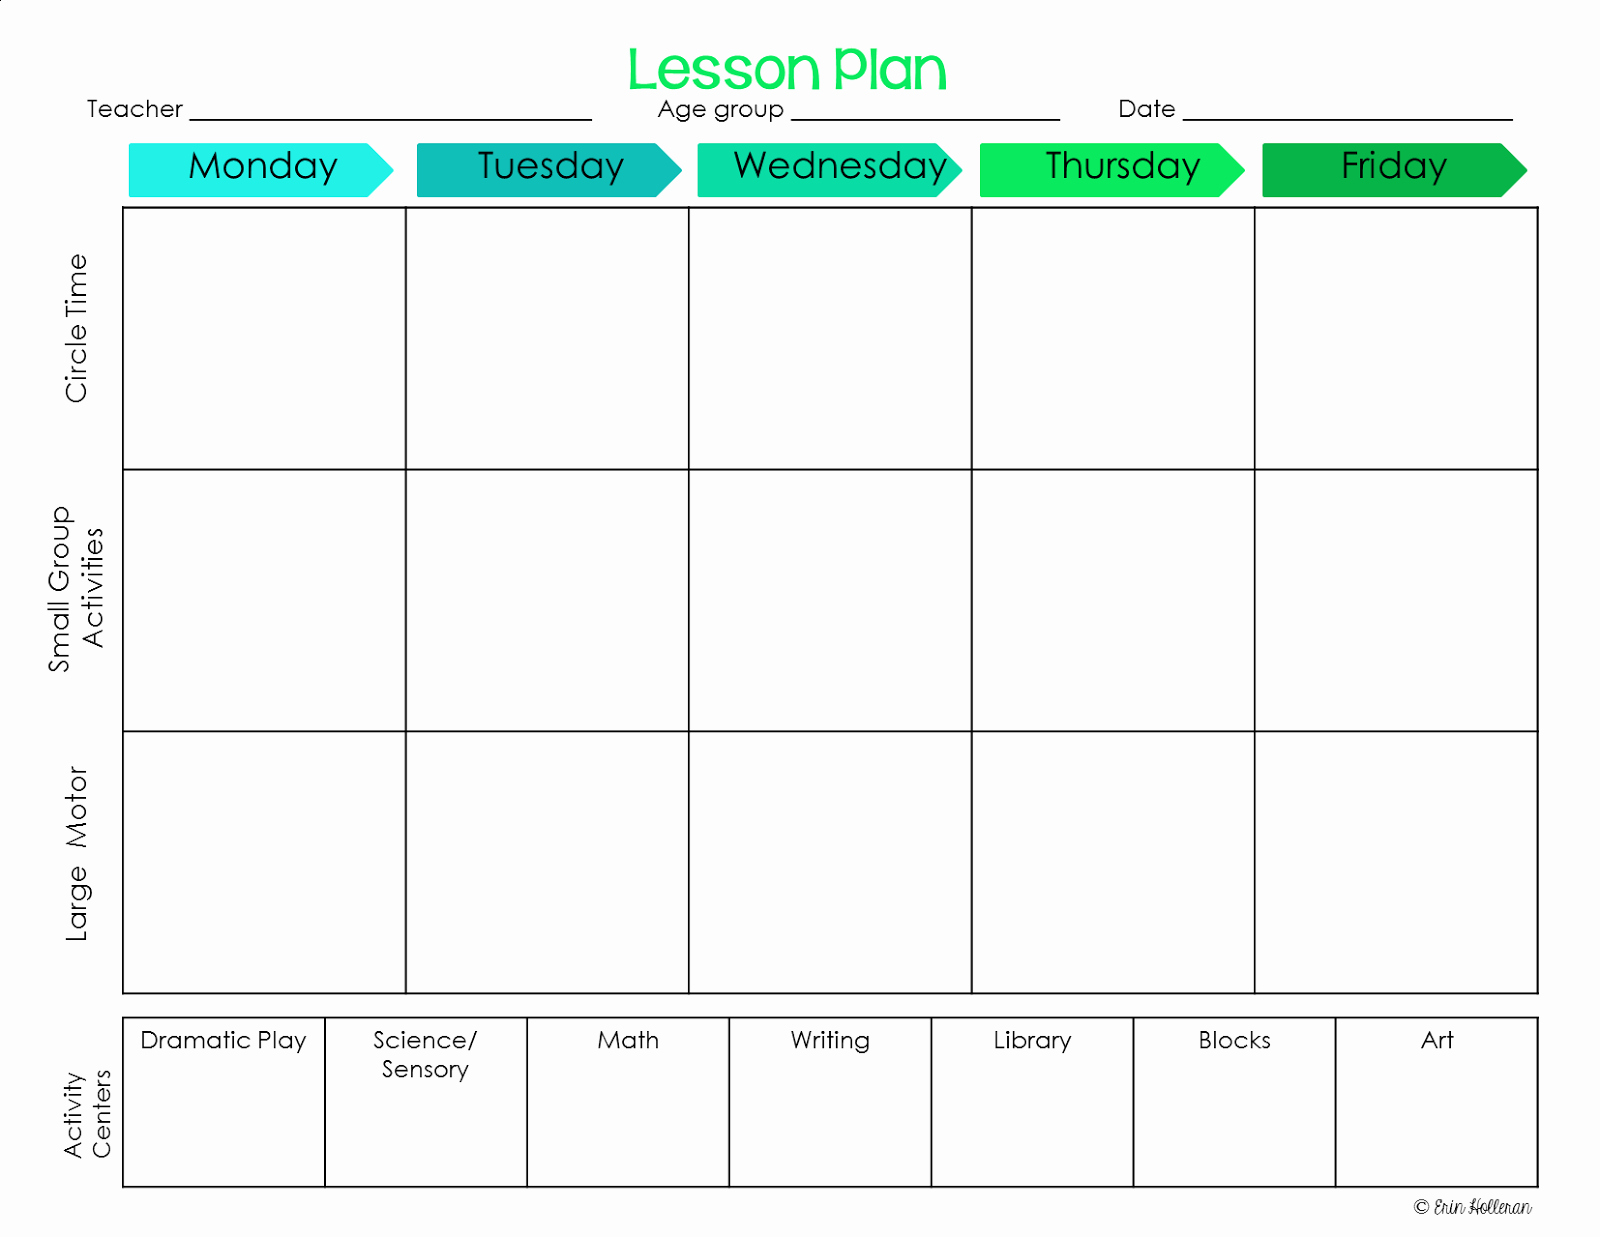 Lesson Plan Template Preschool Unique Preschool Ponderings Make Your Lesson Plans Work for You